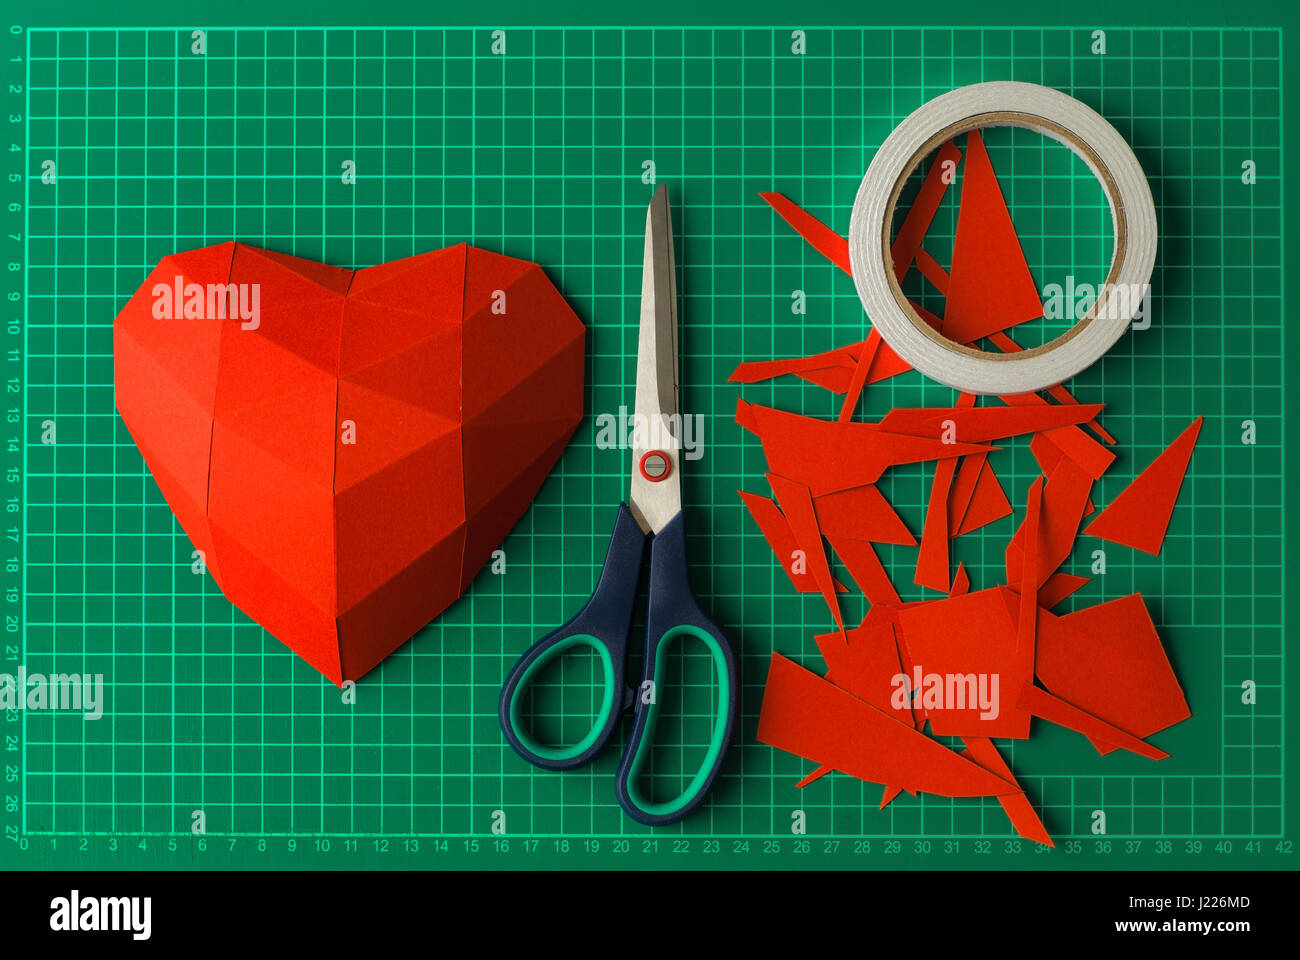 paper craft work made with love - Stock Image